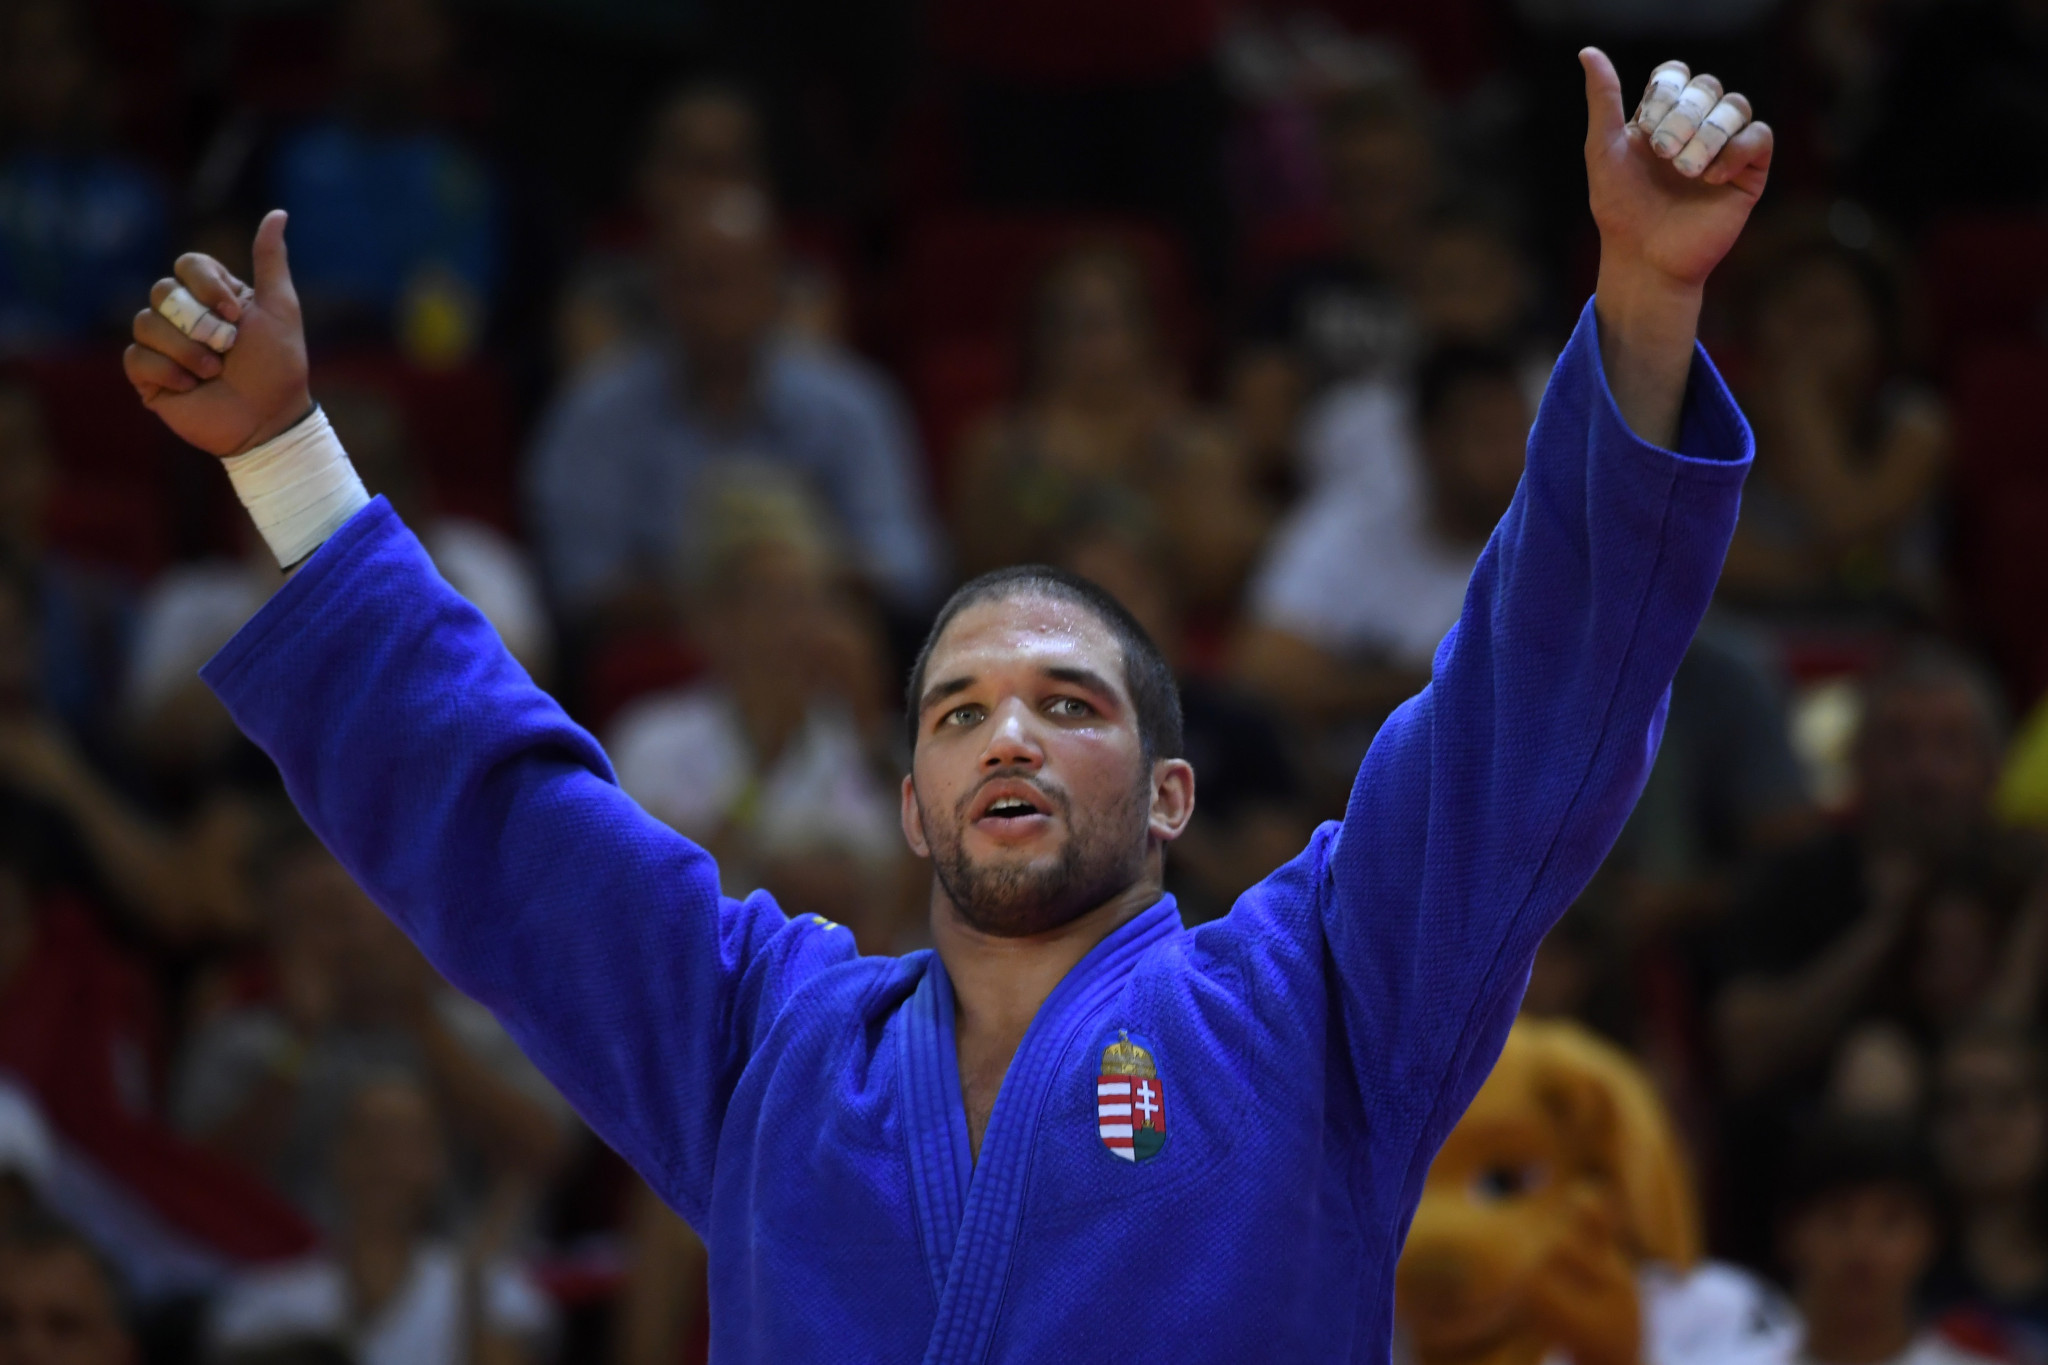 Hungary's Tóth eyeing home glory at IJF Grand Prix in Budapest